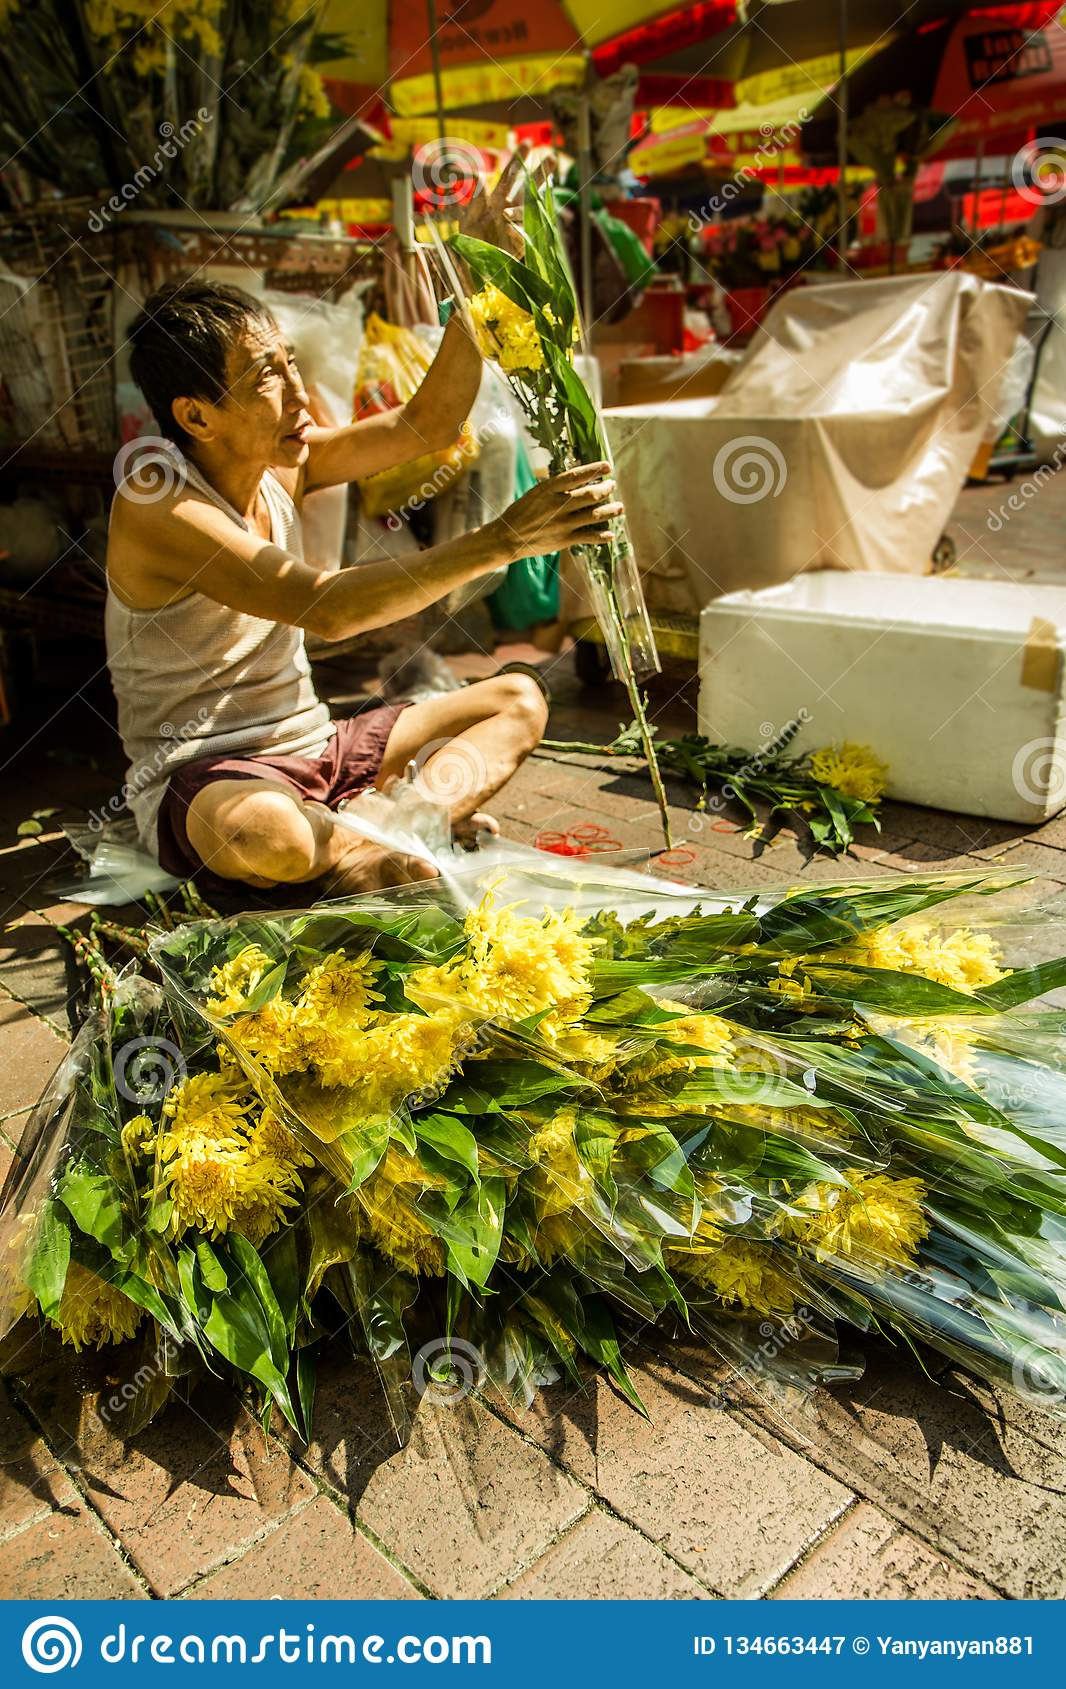 Chinese Man Sells Bouquets Of Fresh Flowers On The Street Of Bugis Singapore Editorial Photography Image Of Flowers Entrepreneur 134663447